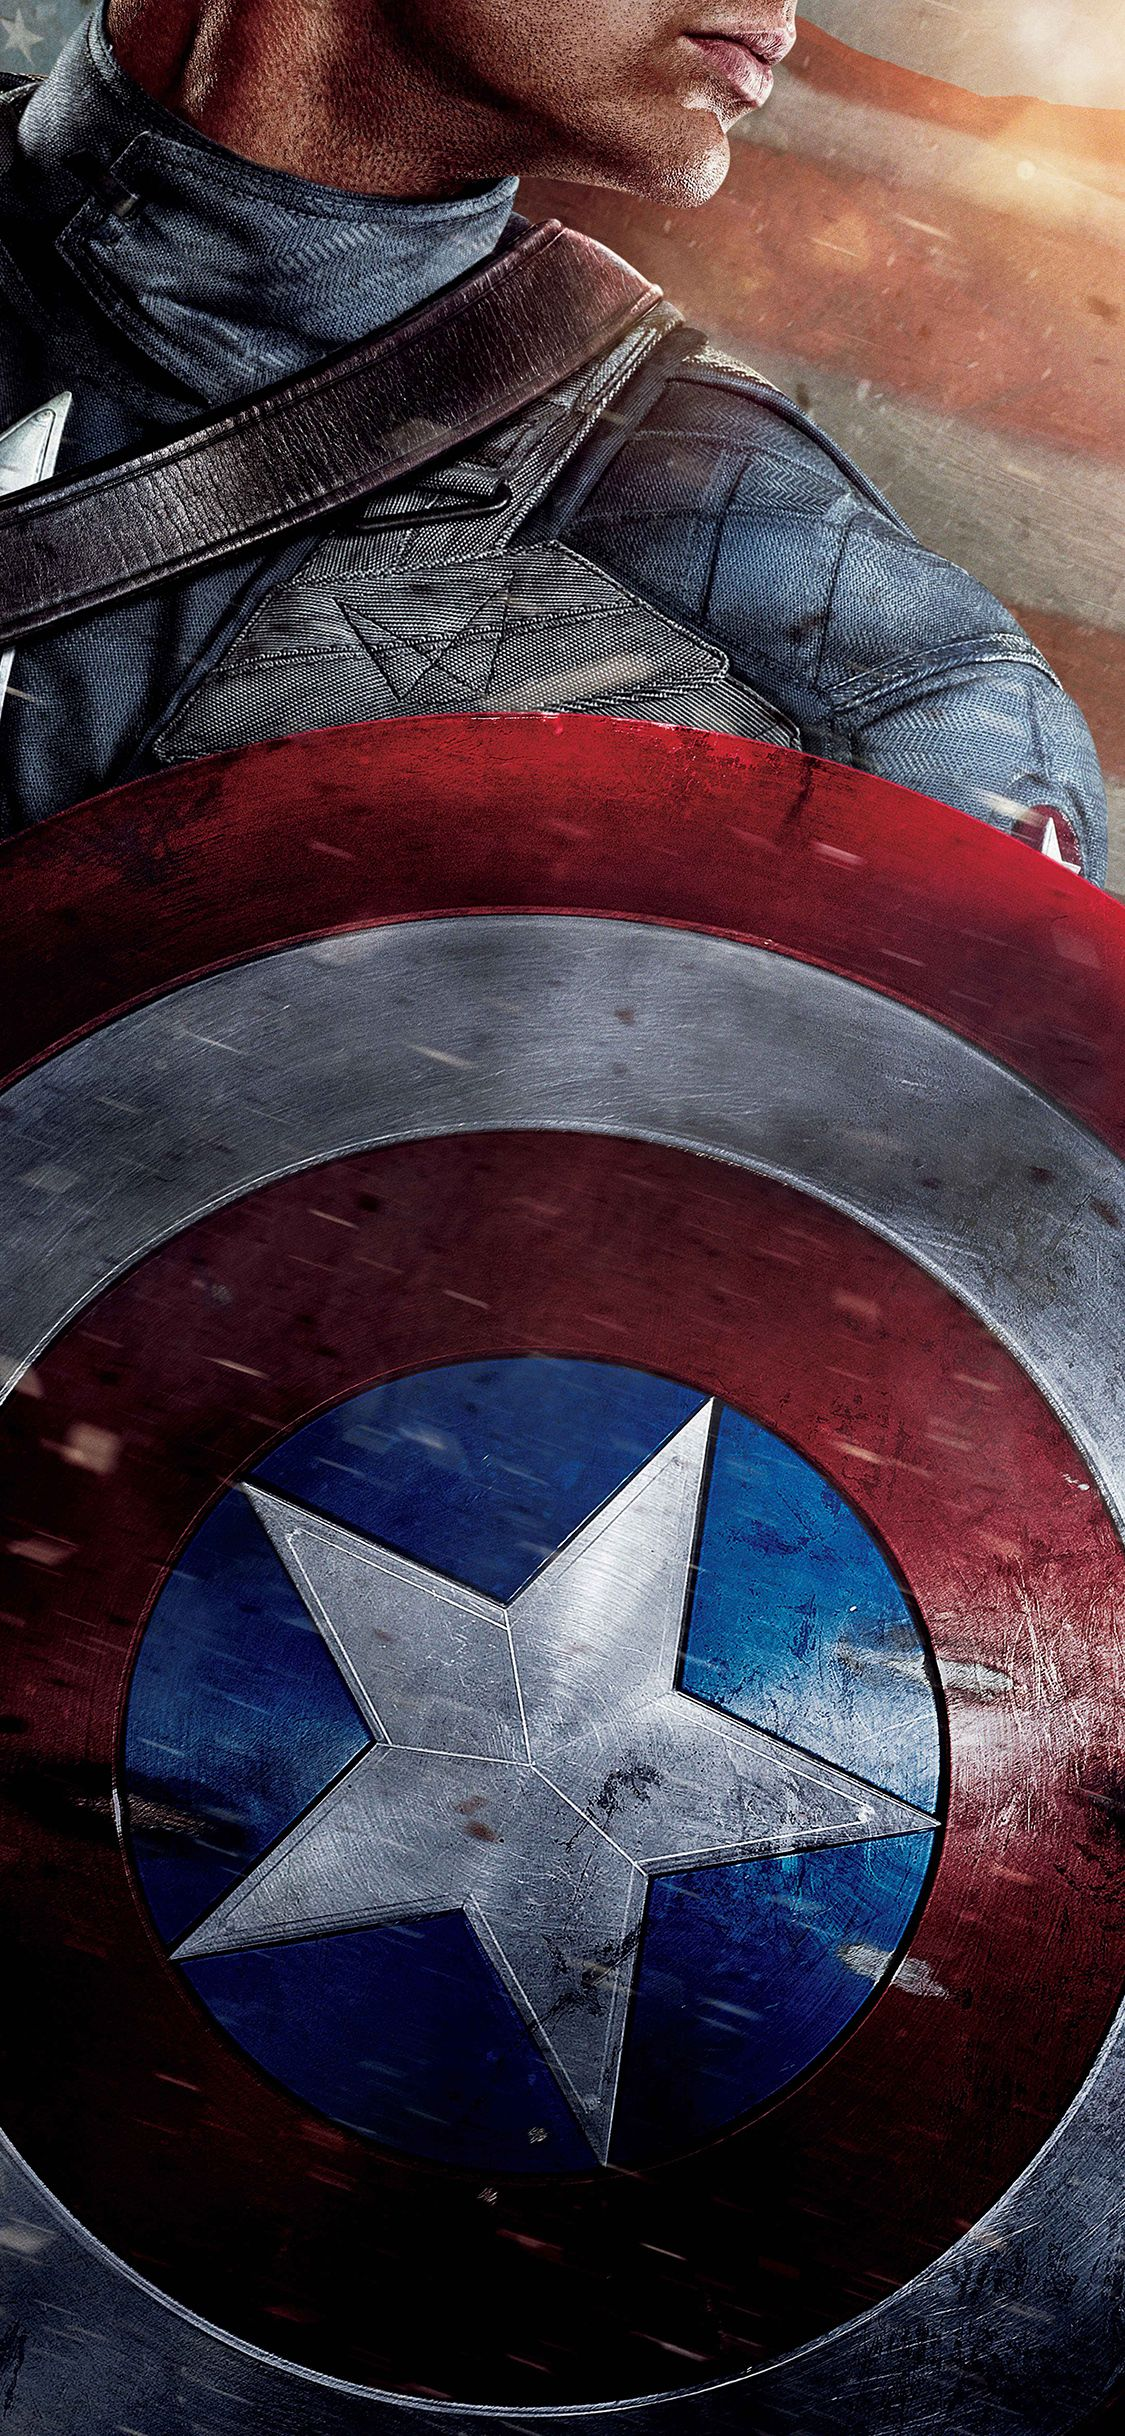 Iphone X Wallpaper - Captain America Wallpaper 4k For Android , HD Wallpaper & Backgrounds